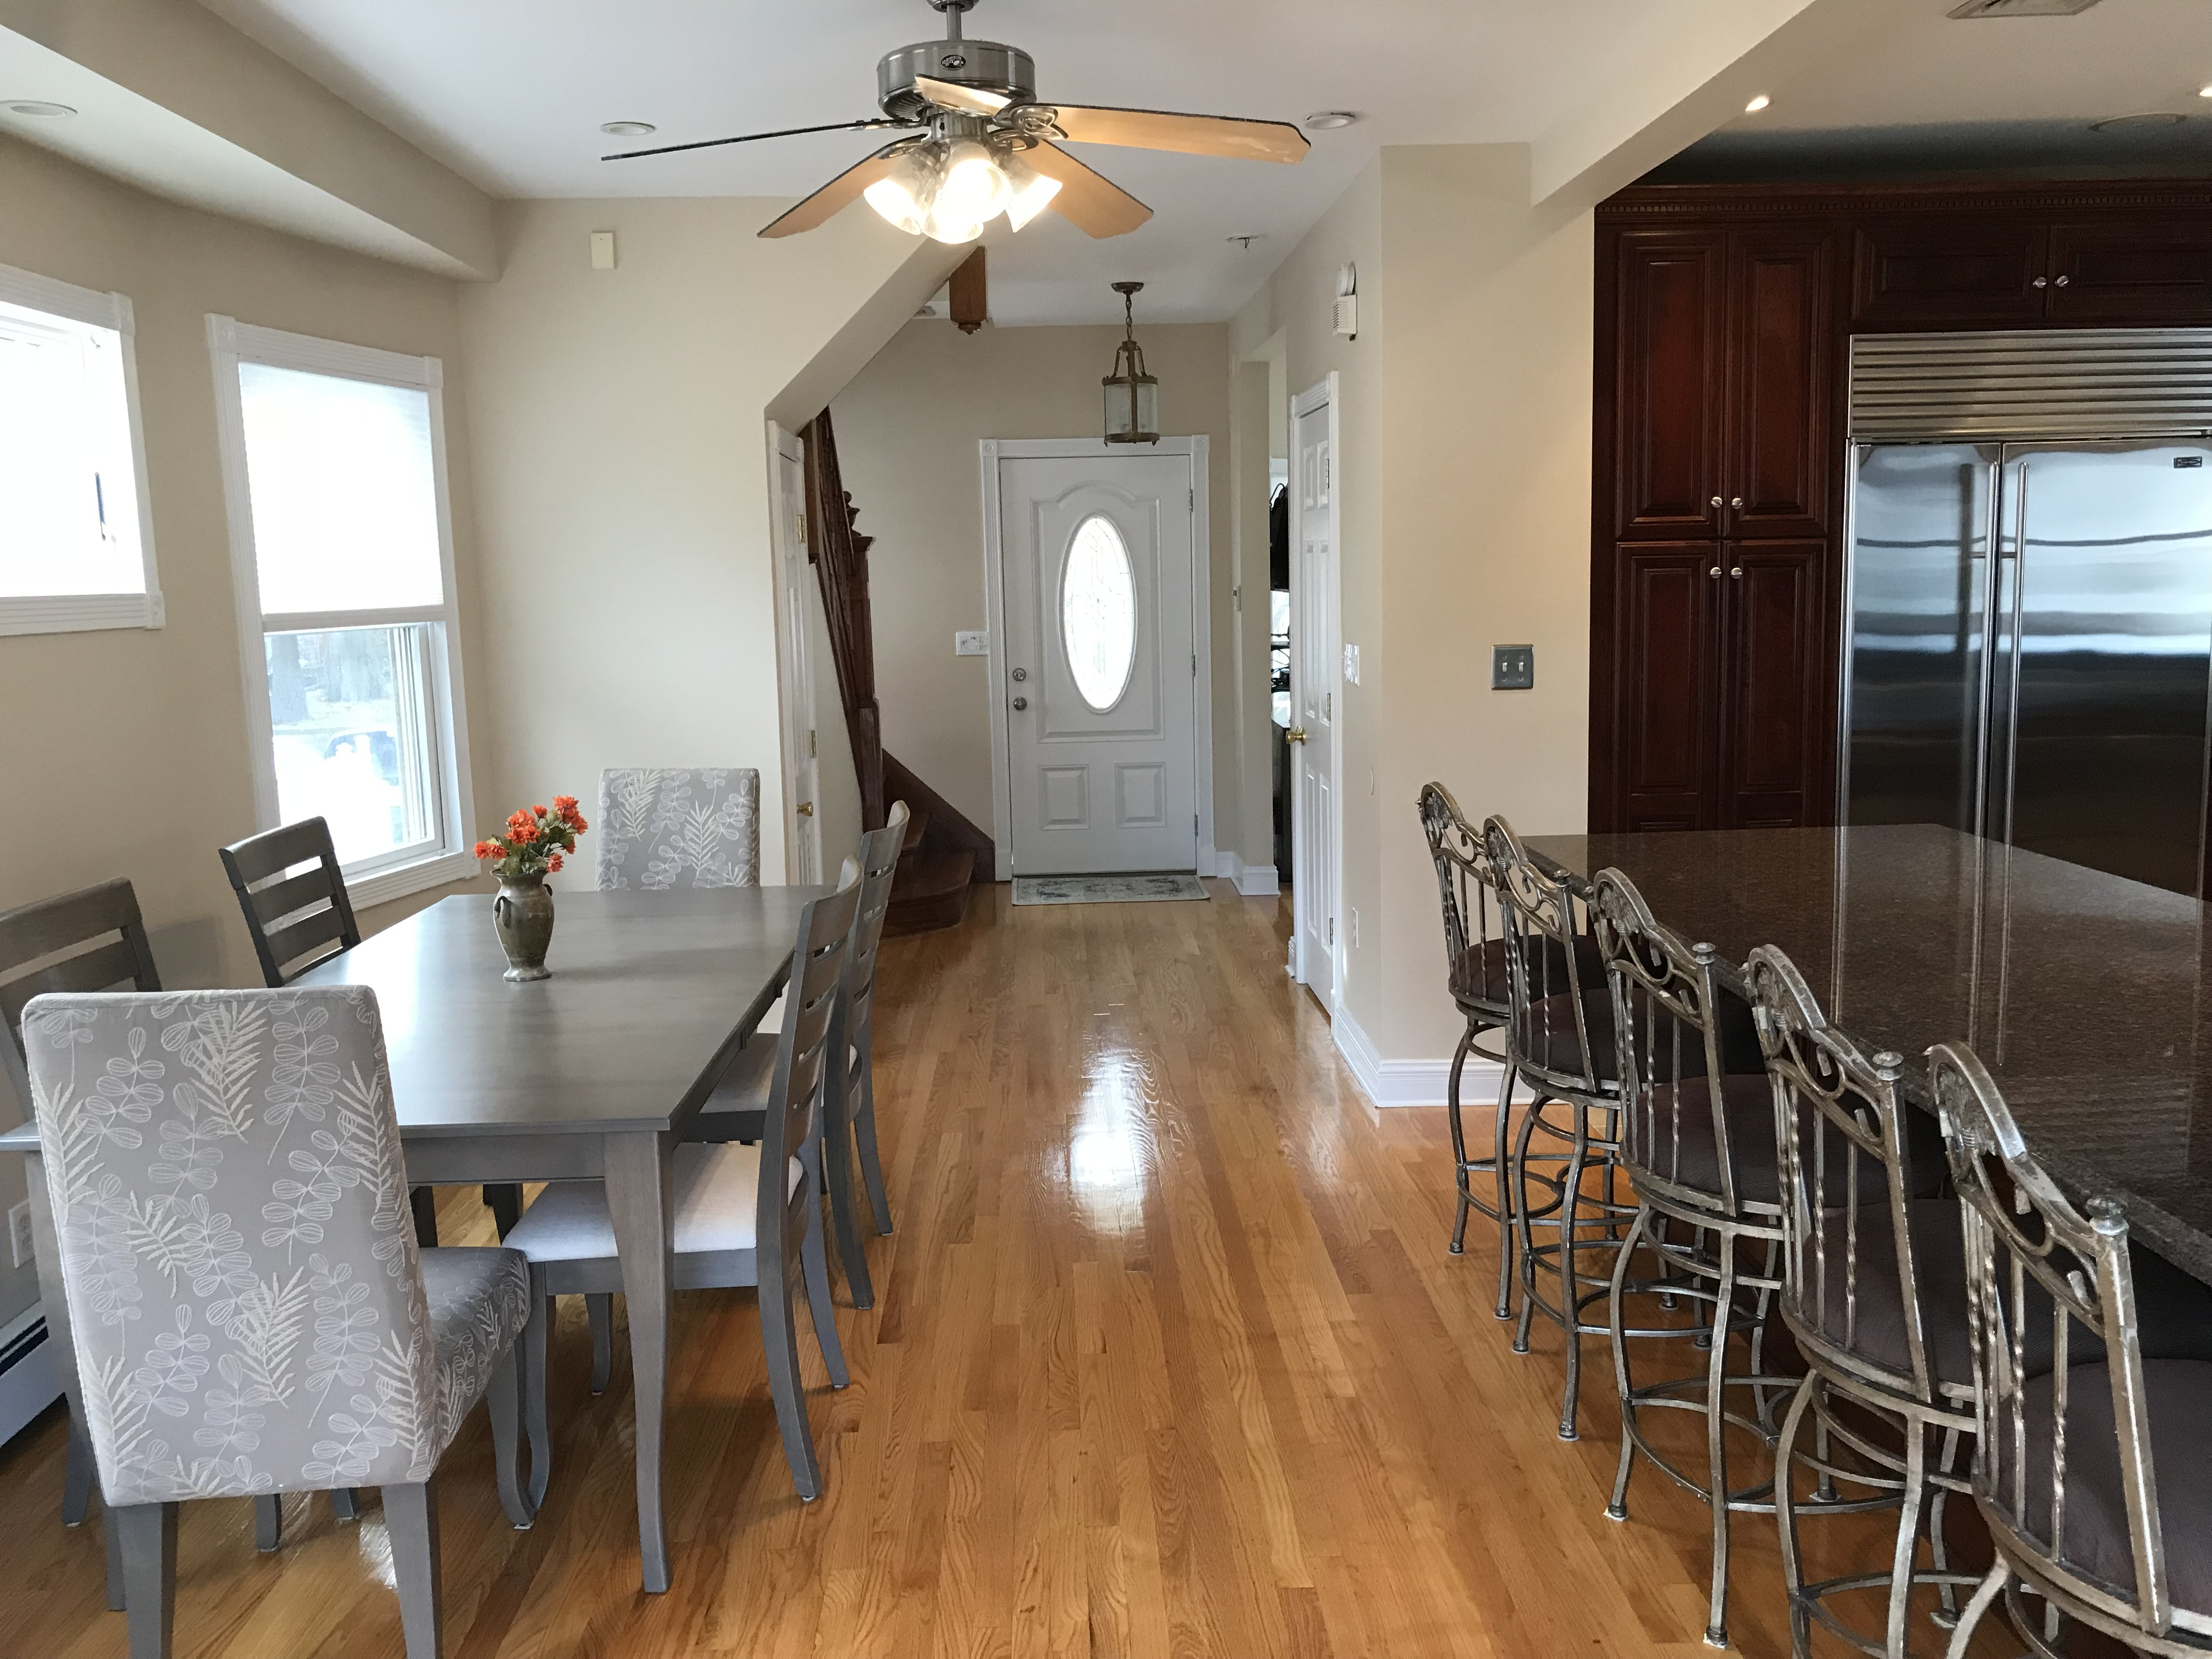 315 Brehaut dining kitchen counter seating front door - A.T. REAL ...